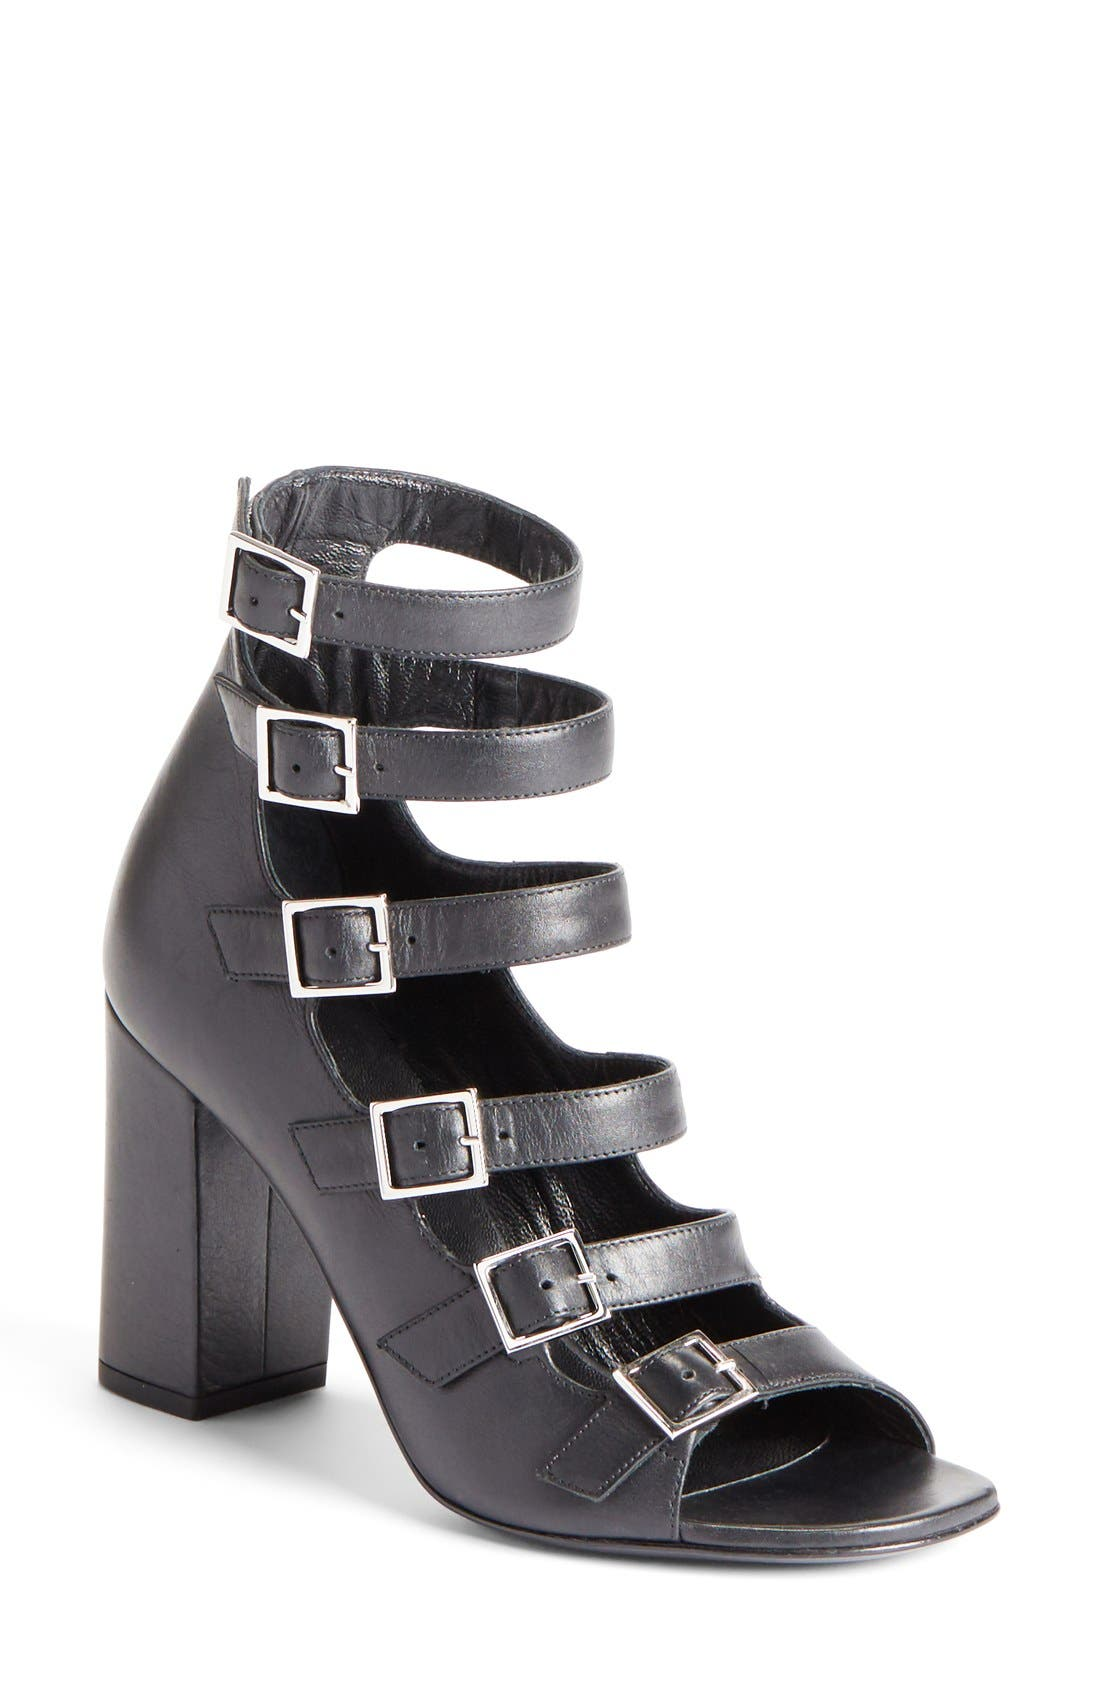 Saint Laurent 'Babies' Buckle Strap Sandal (Women)